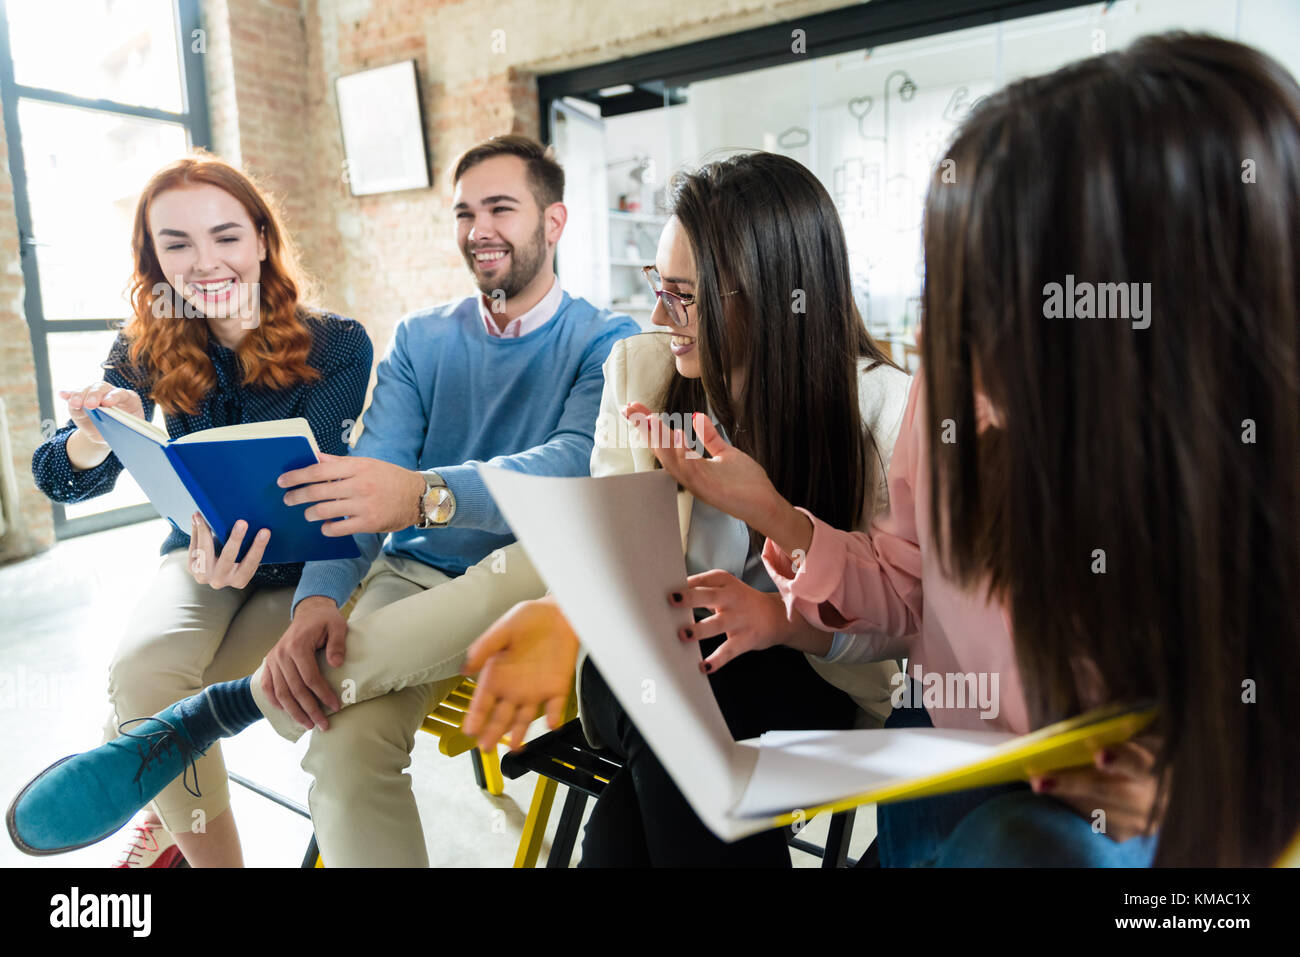 Applying for jobs at the same company - Stock Image